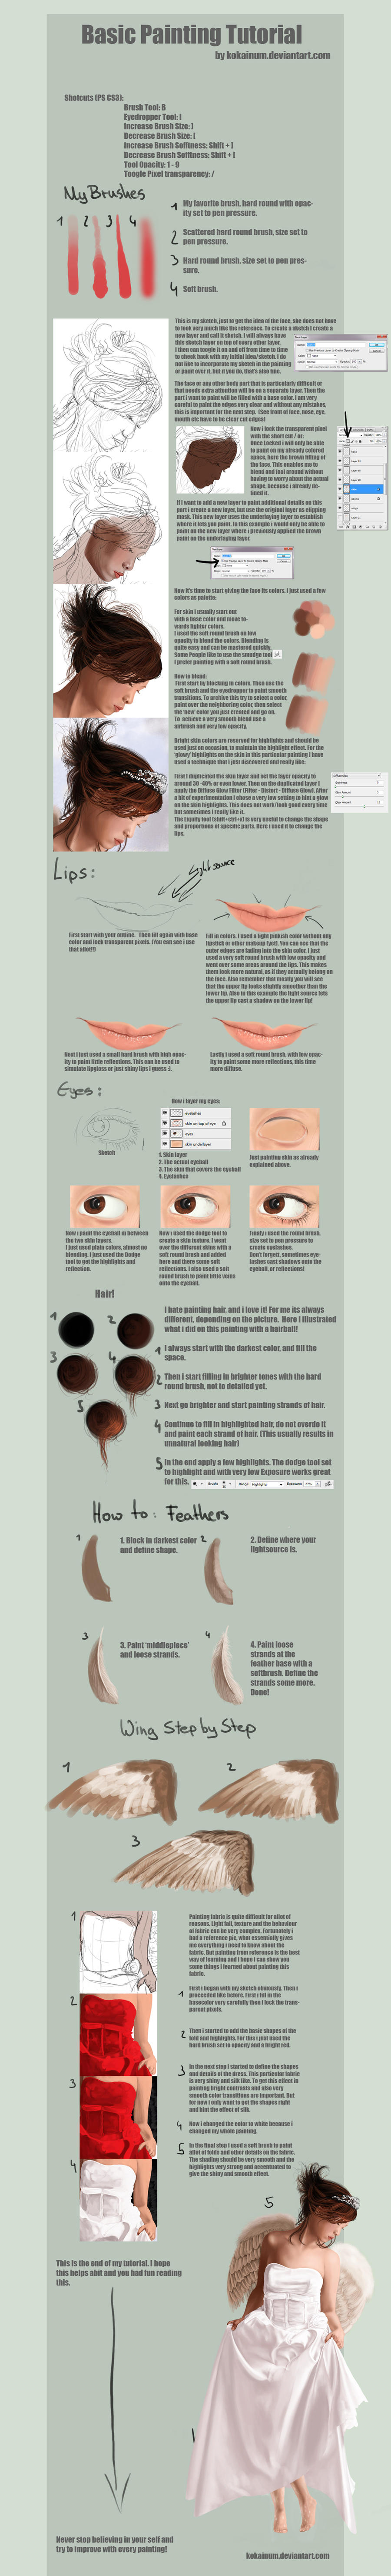 Basic PS Painting Tutorial by kokaInum